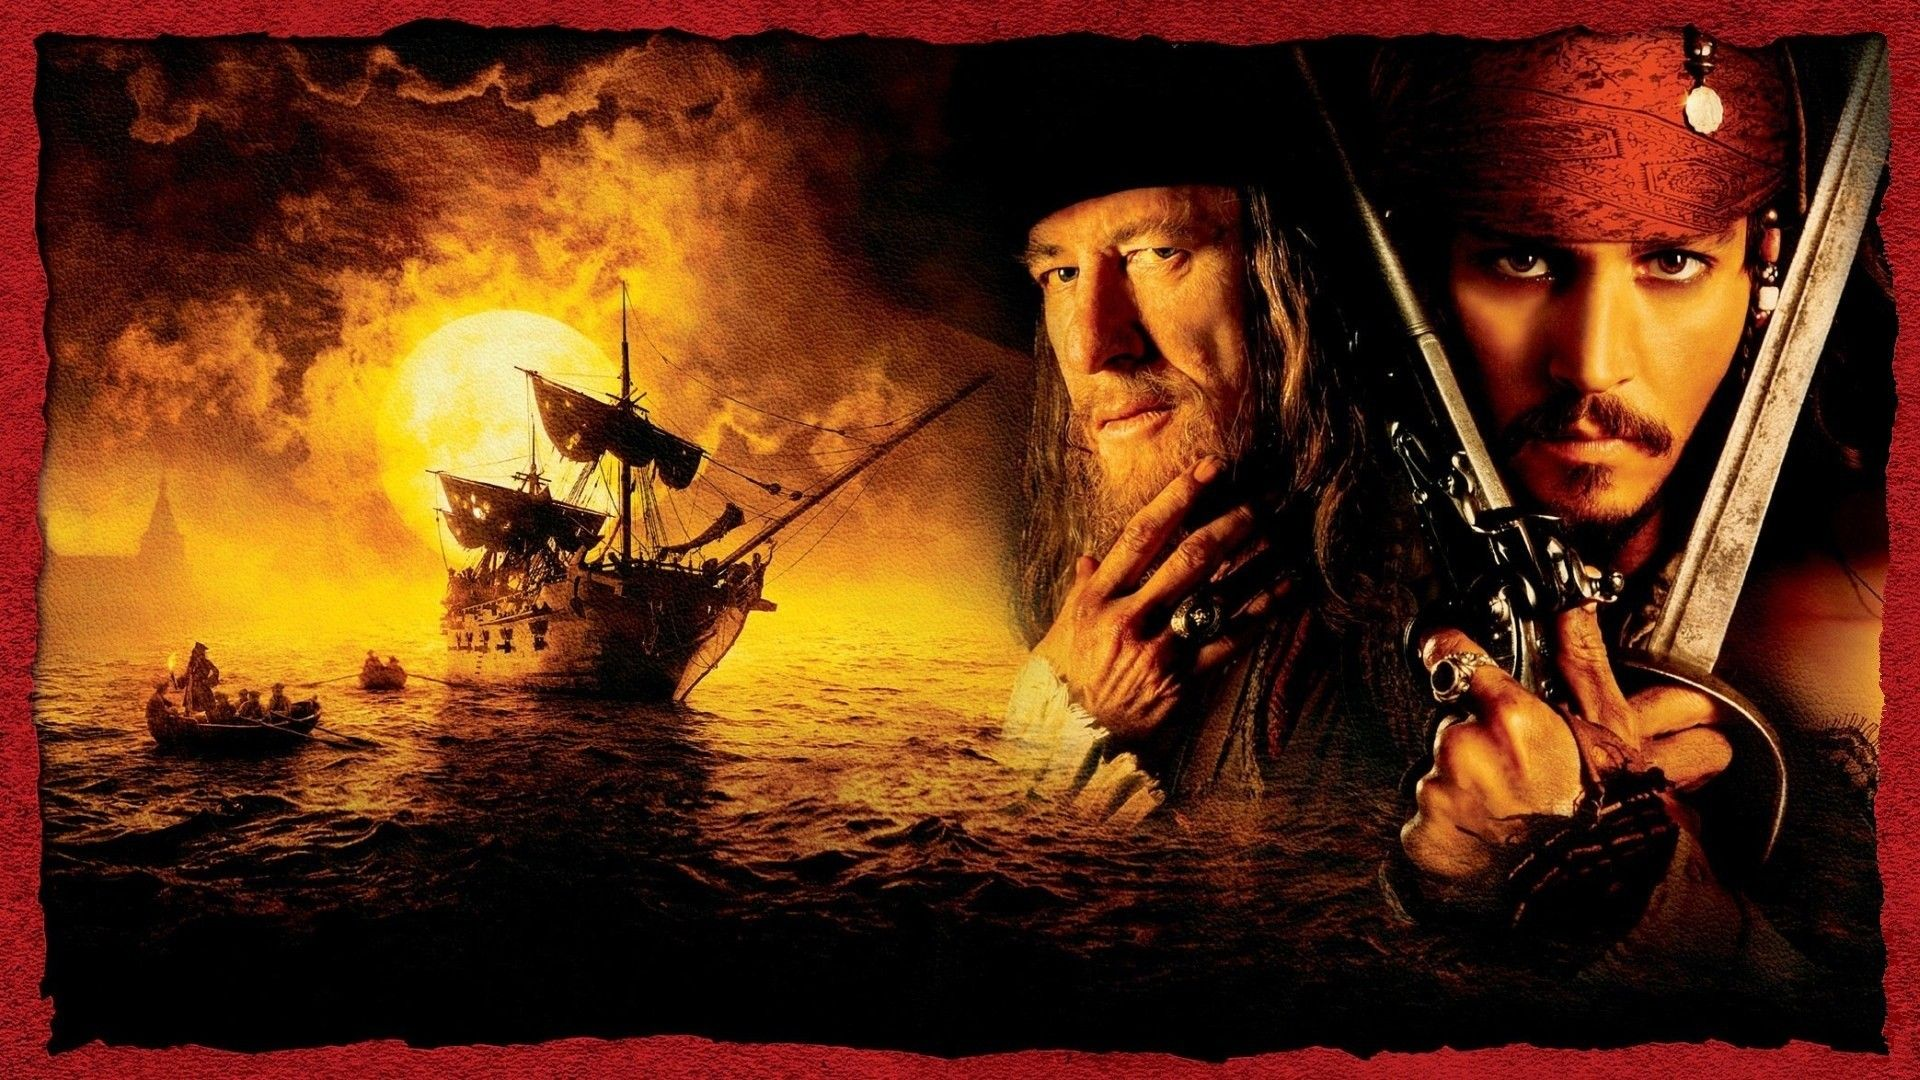 pirates of the caribbean wallpapers wallpaper | hd wallpapers